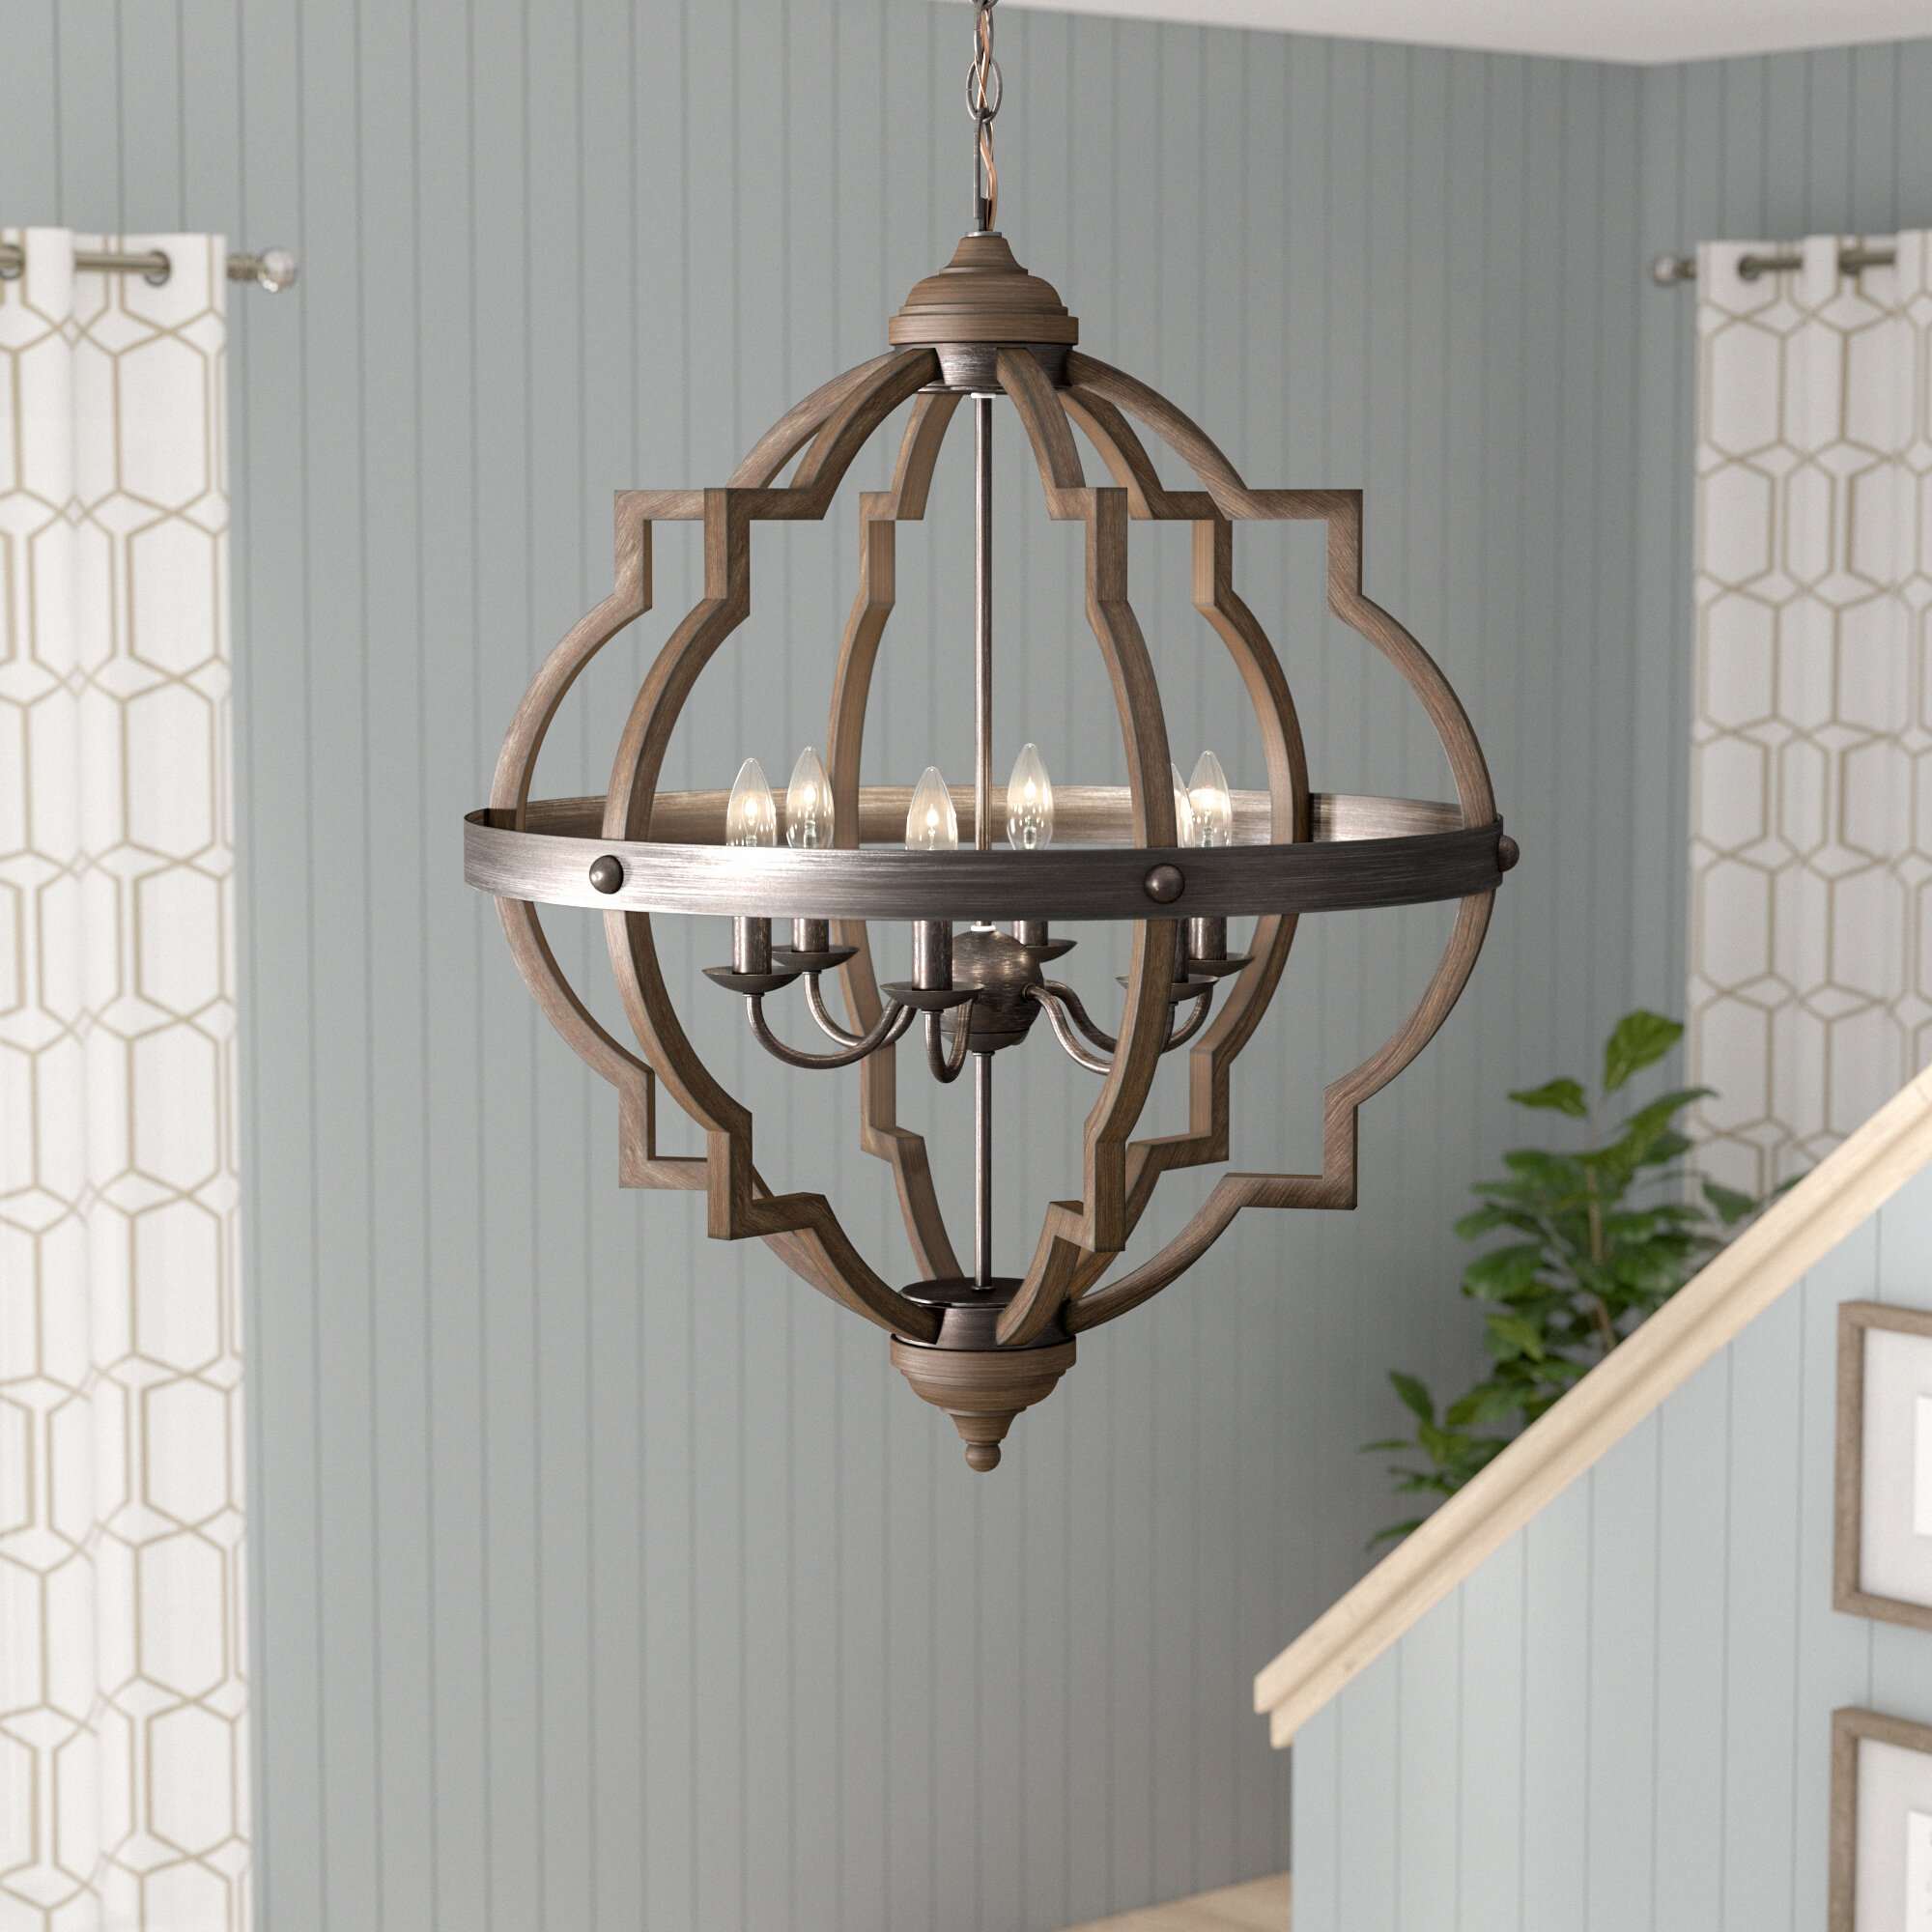 Birch Lane Rithland 6 Light Candle Style Geometric Chandelier Reviews Wayfair Ca